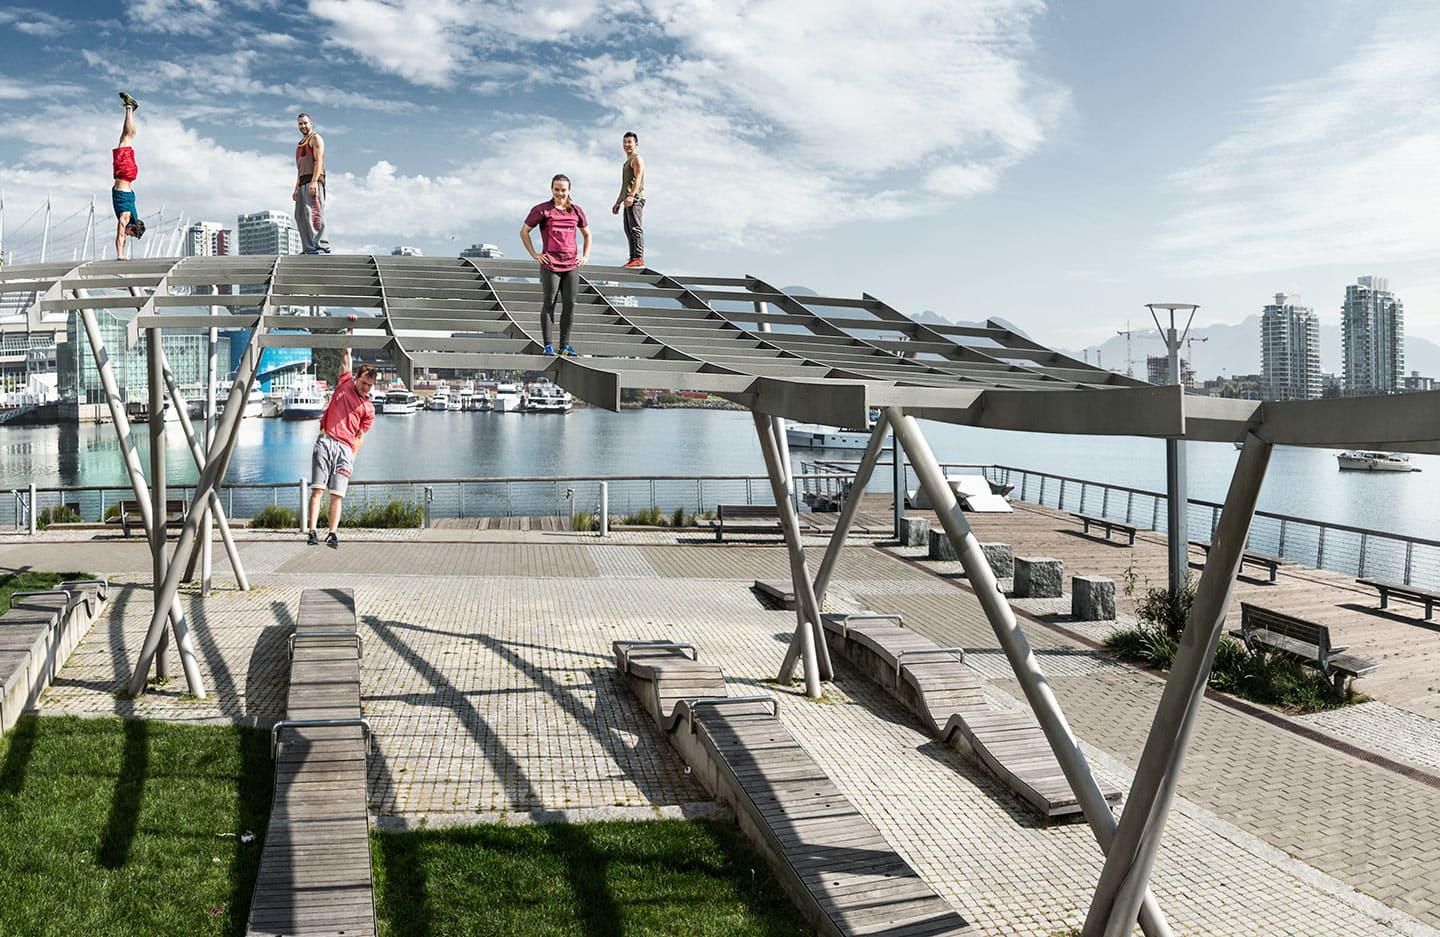 Parkour Athletes Pose for Image at Park on Scaffolding Bright Skies Handstand